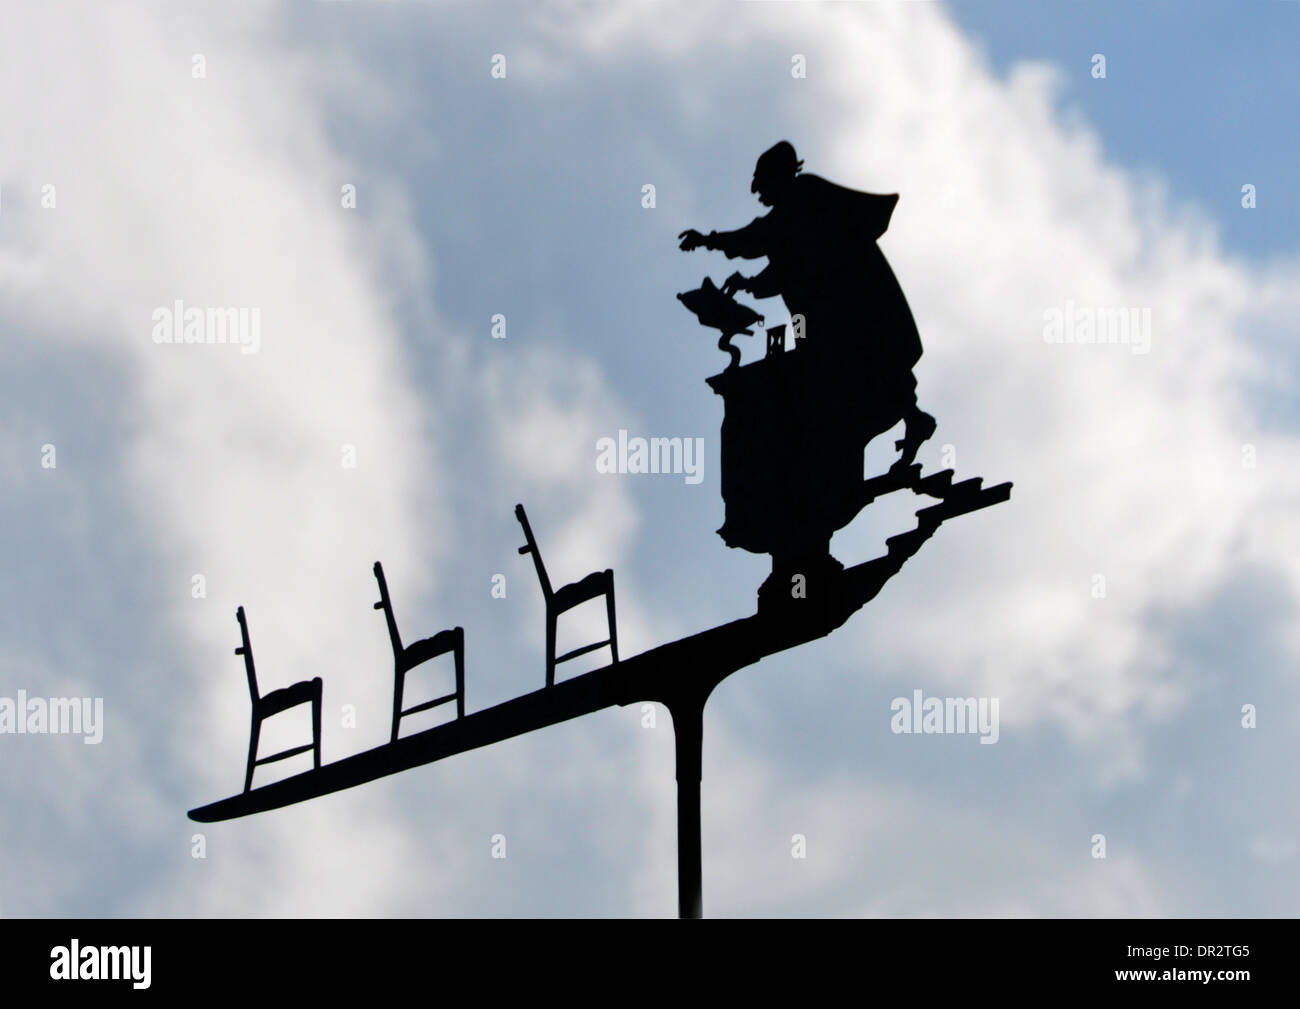 Unusual weather vane - preacher speaking to empty pews  - silhouette against the sky - white clouds and blue sky Stock Photo